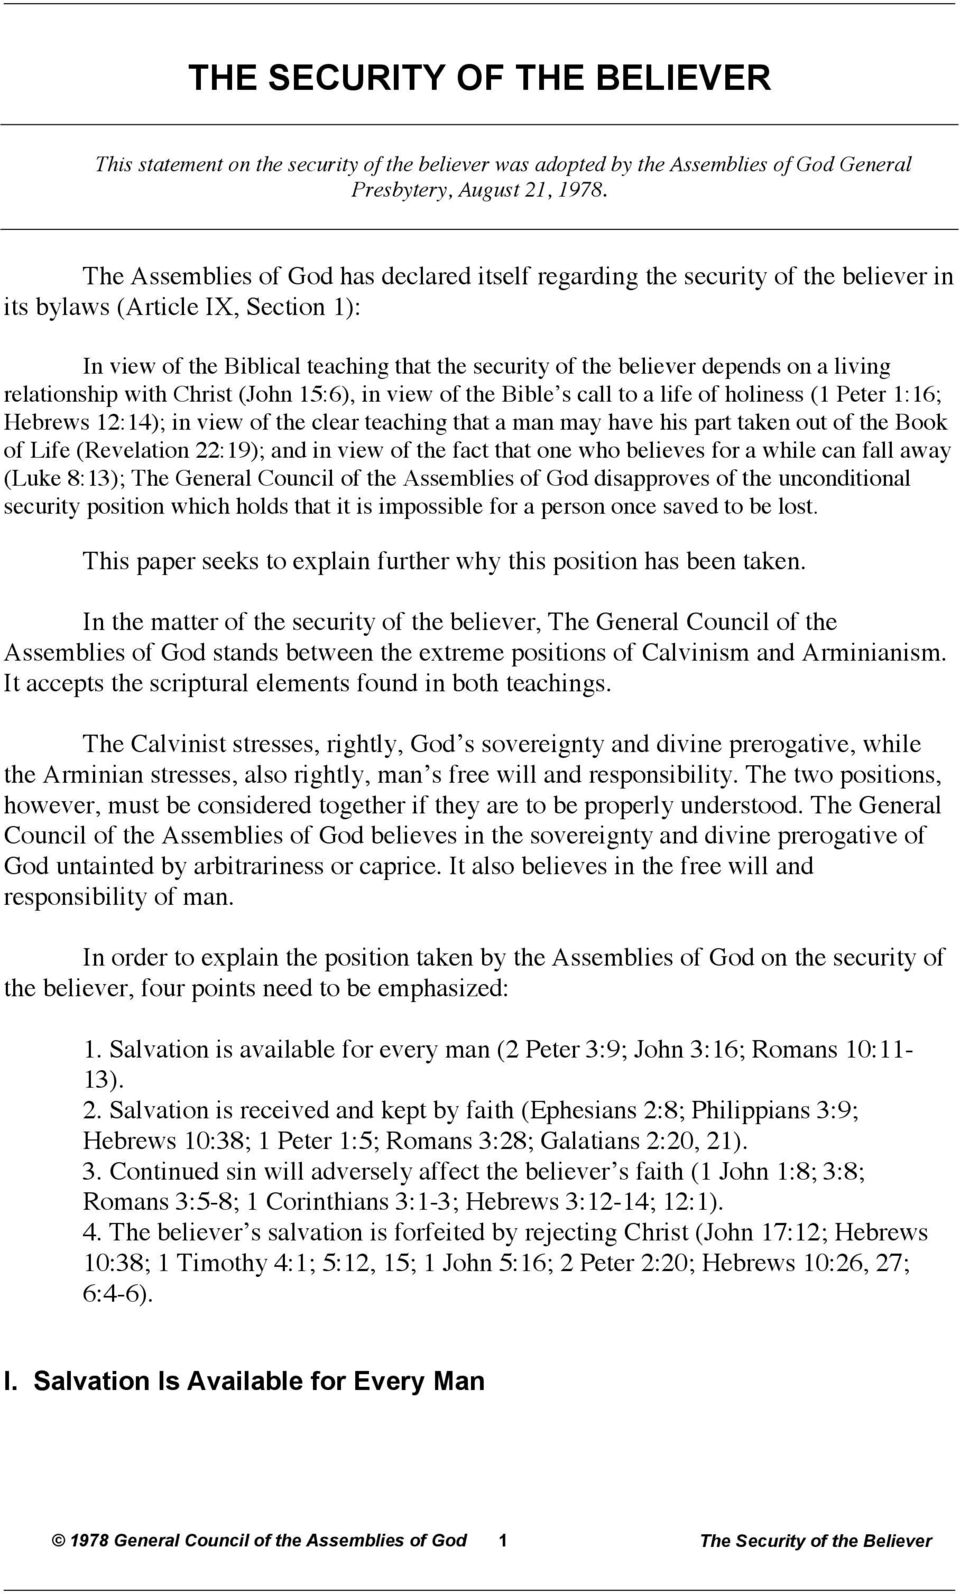 THE SECURITY OF THE BELIEVER - PDF